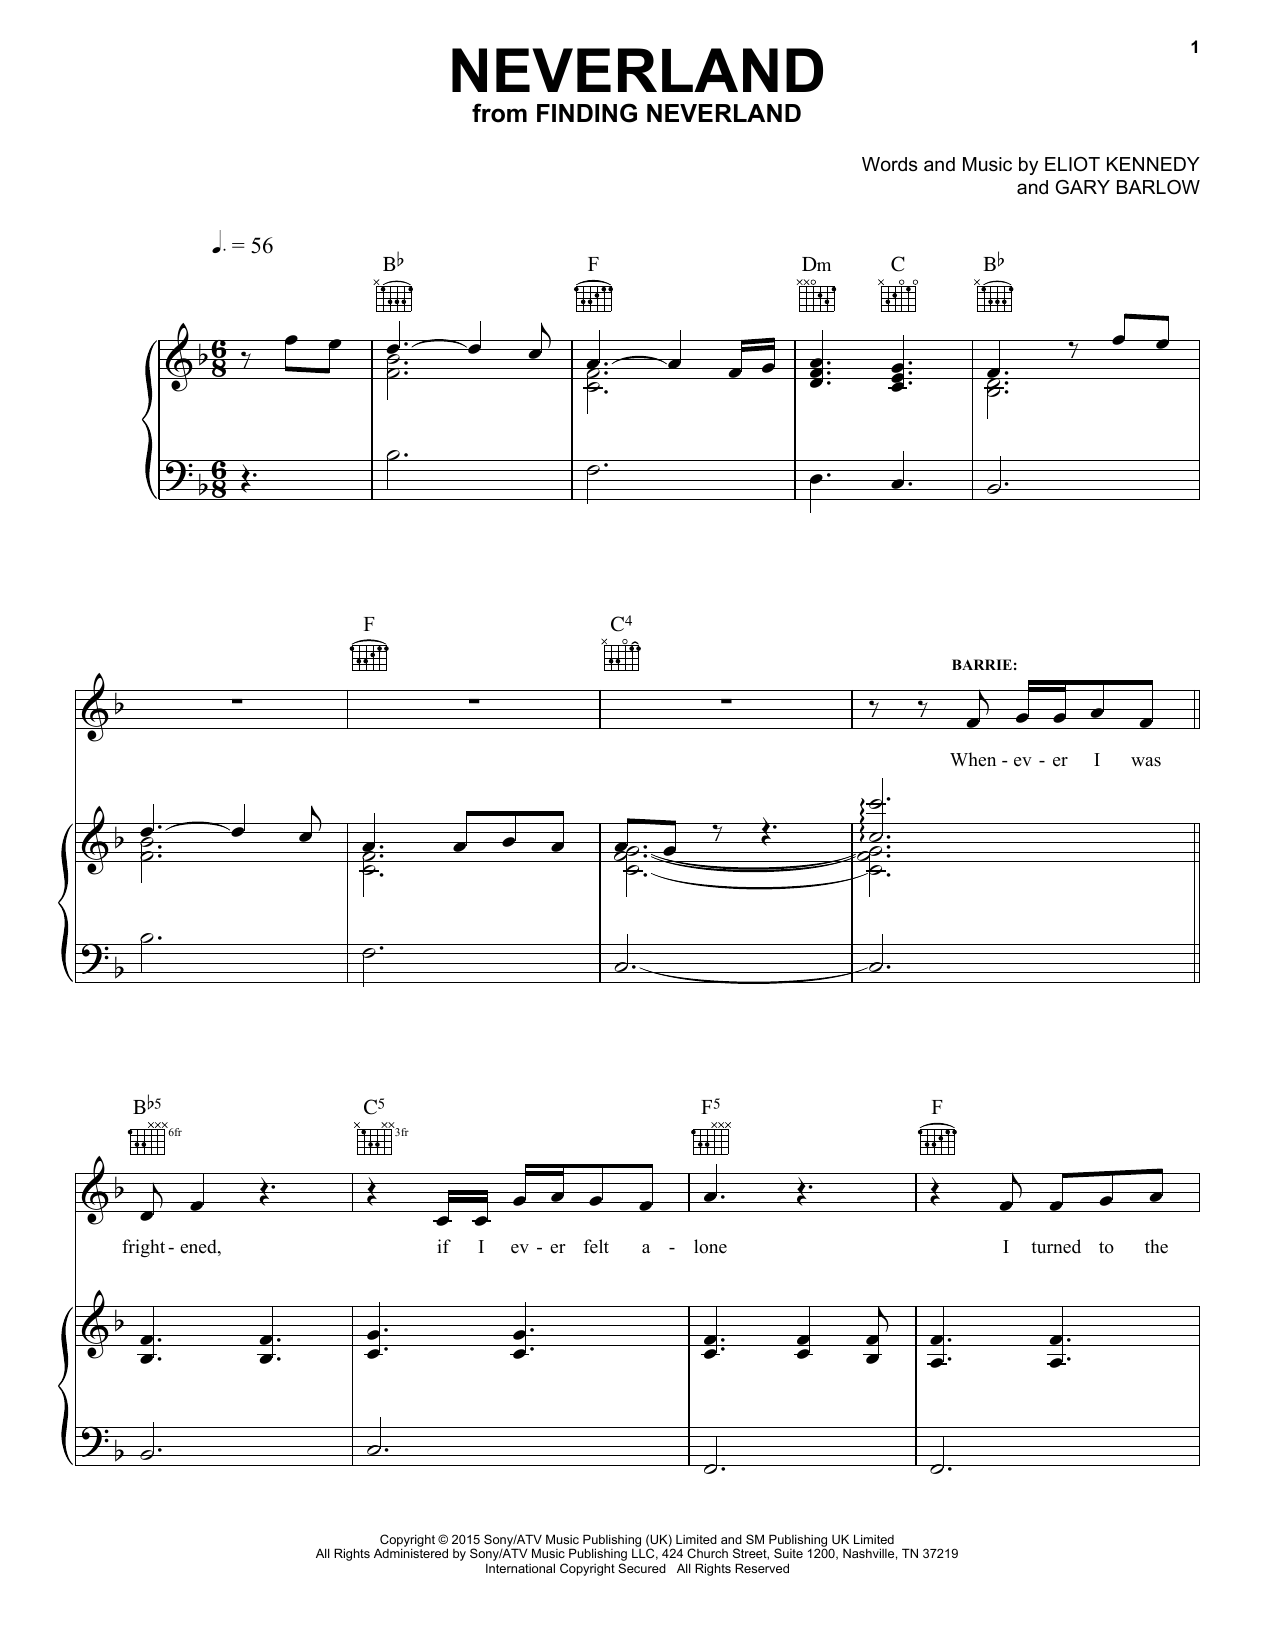 Neverland sheet music